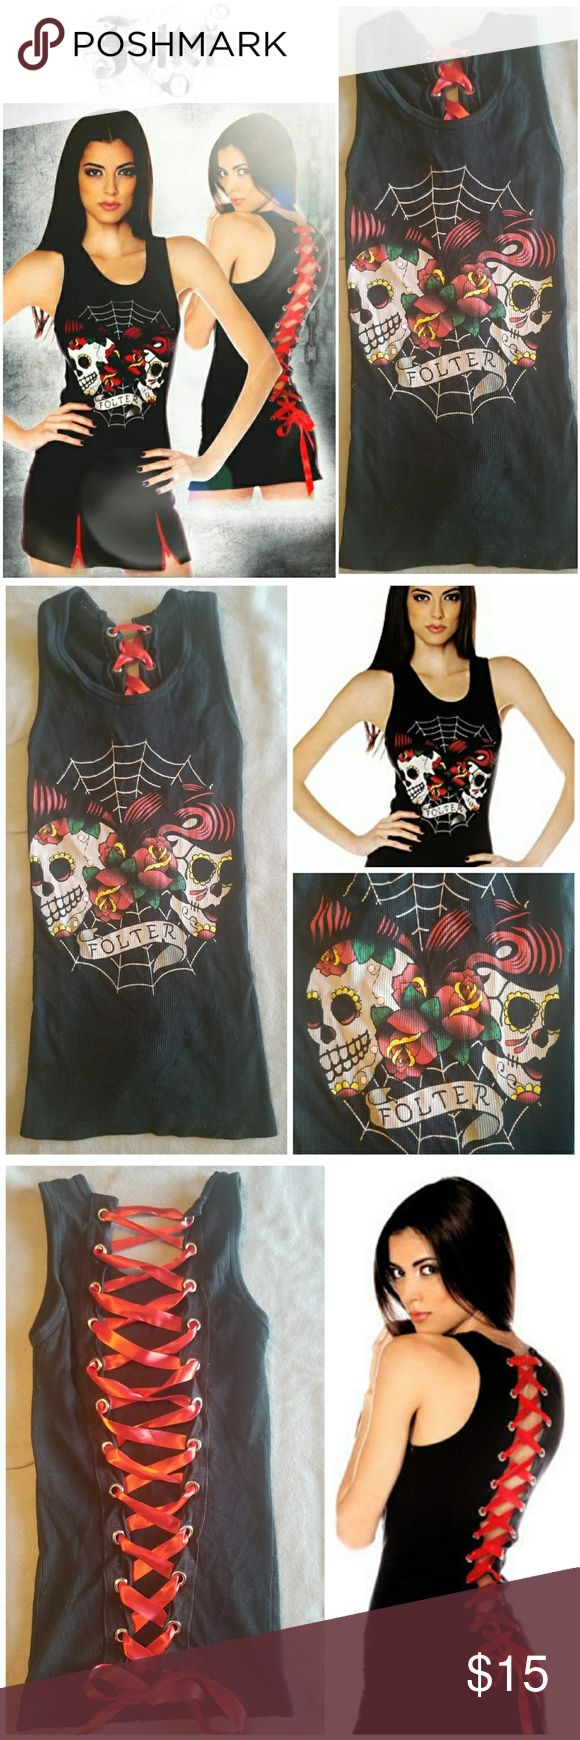 LIKE NEW Folter Corset Back Sugar Skull Tank Top Great condition, basically new size small pin-up style tank top by Folter, a Modcloth company. Runs small, so being XS would be best. Worn once then put in storage & forgotten. No rips, holes, or stains. Solid black tank with a spider web w/ 2 Dias De Los Muertos style (sugar) skulls & roses. Back looks like a corset, it has holes up both sides to weave a ribbon through. Includes original red ribbon. Bought from a small local shop, but the…